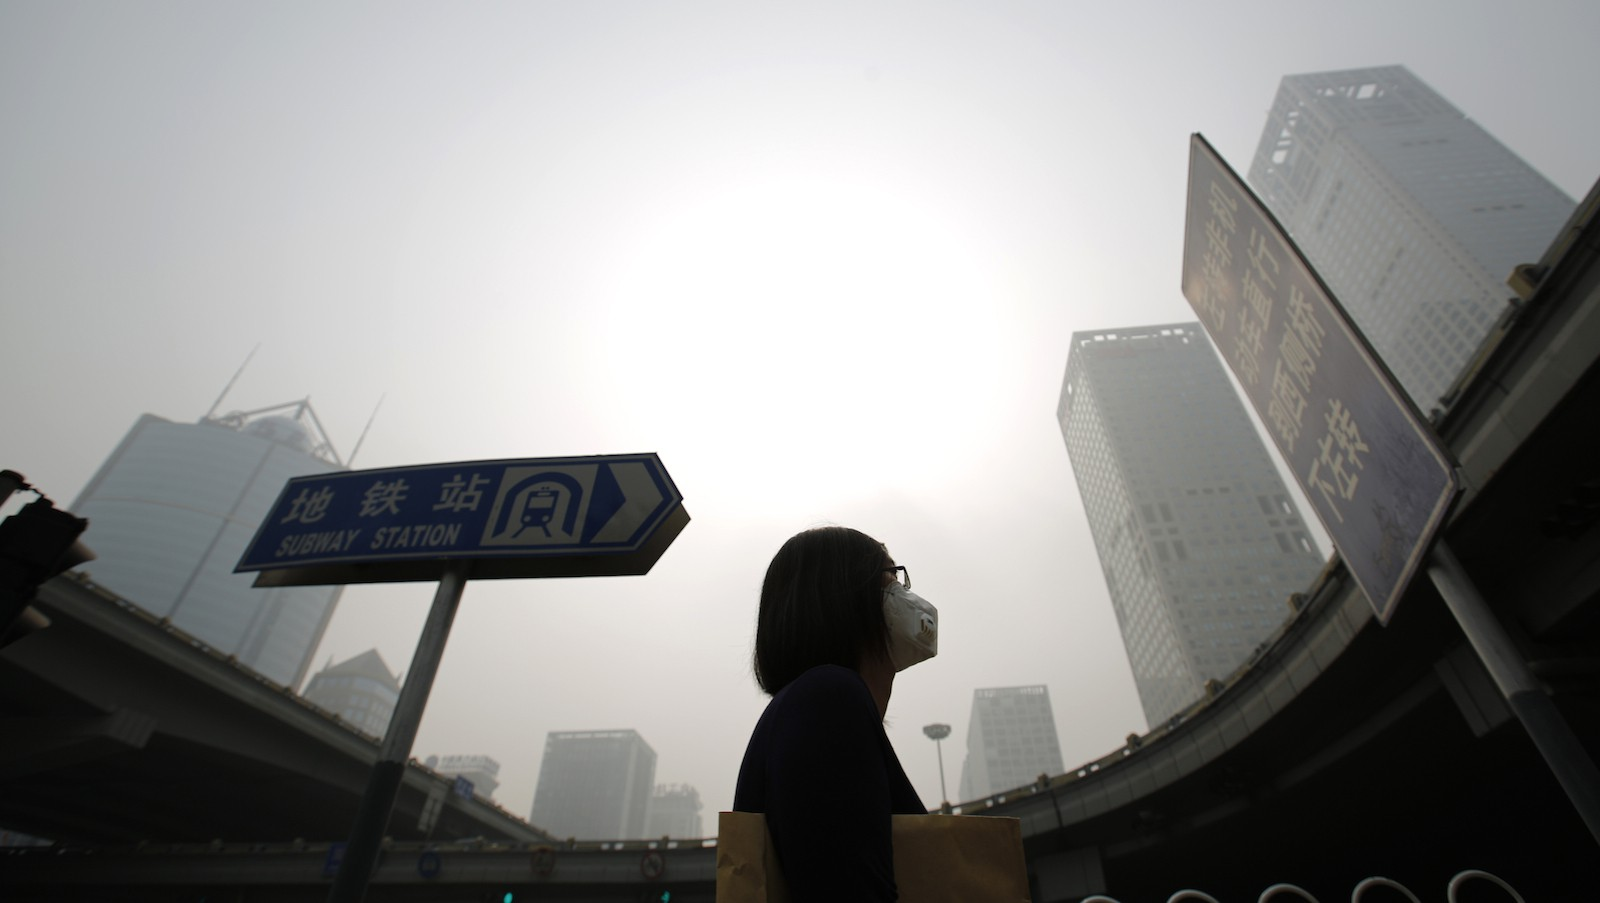 A woman wearing a mask makes her way on a street amid heavy haze and smog in Beijing